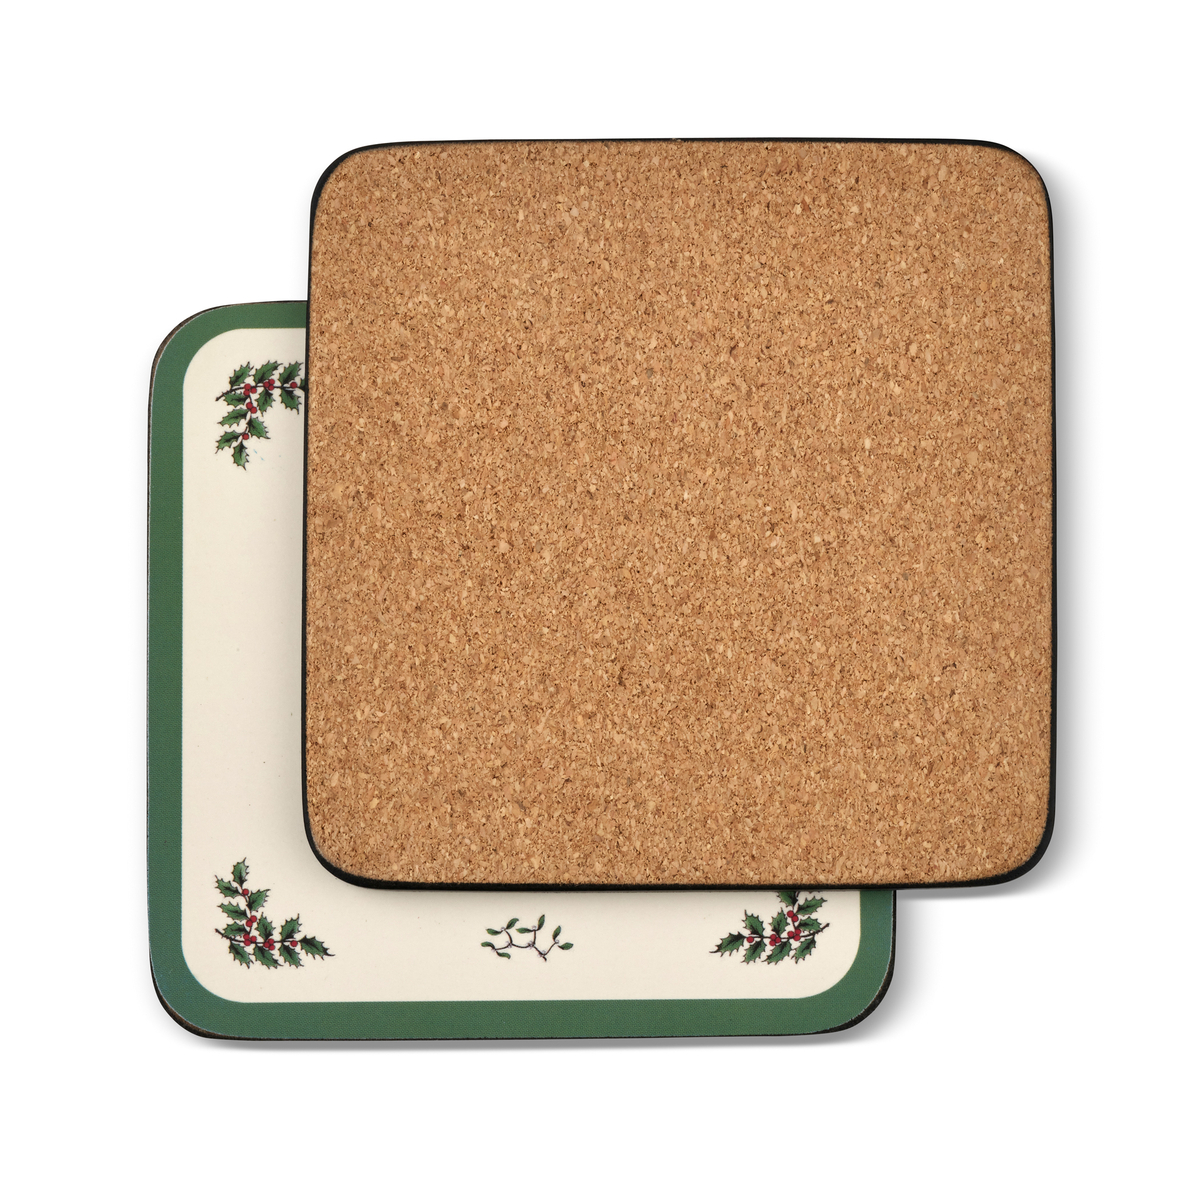 Pimpernel Christmas Tree Coasters Set of 6 image number 1